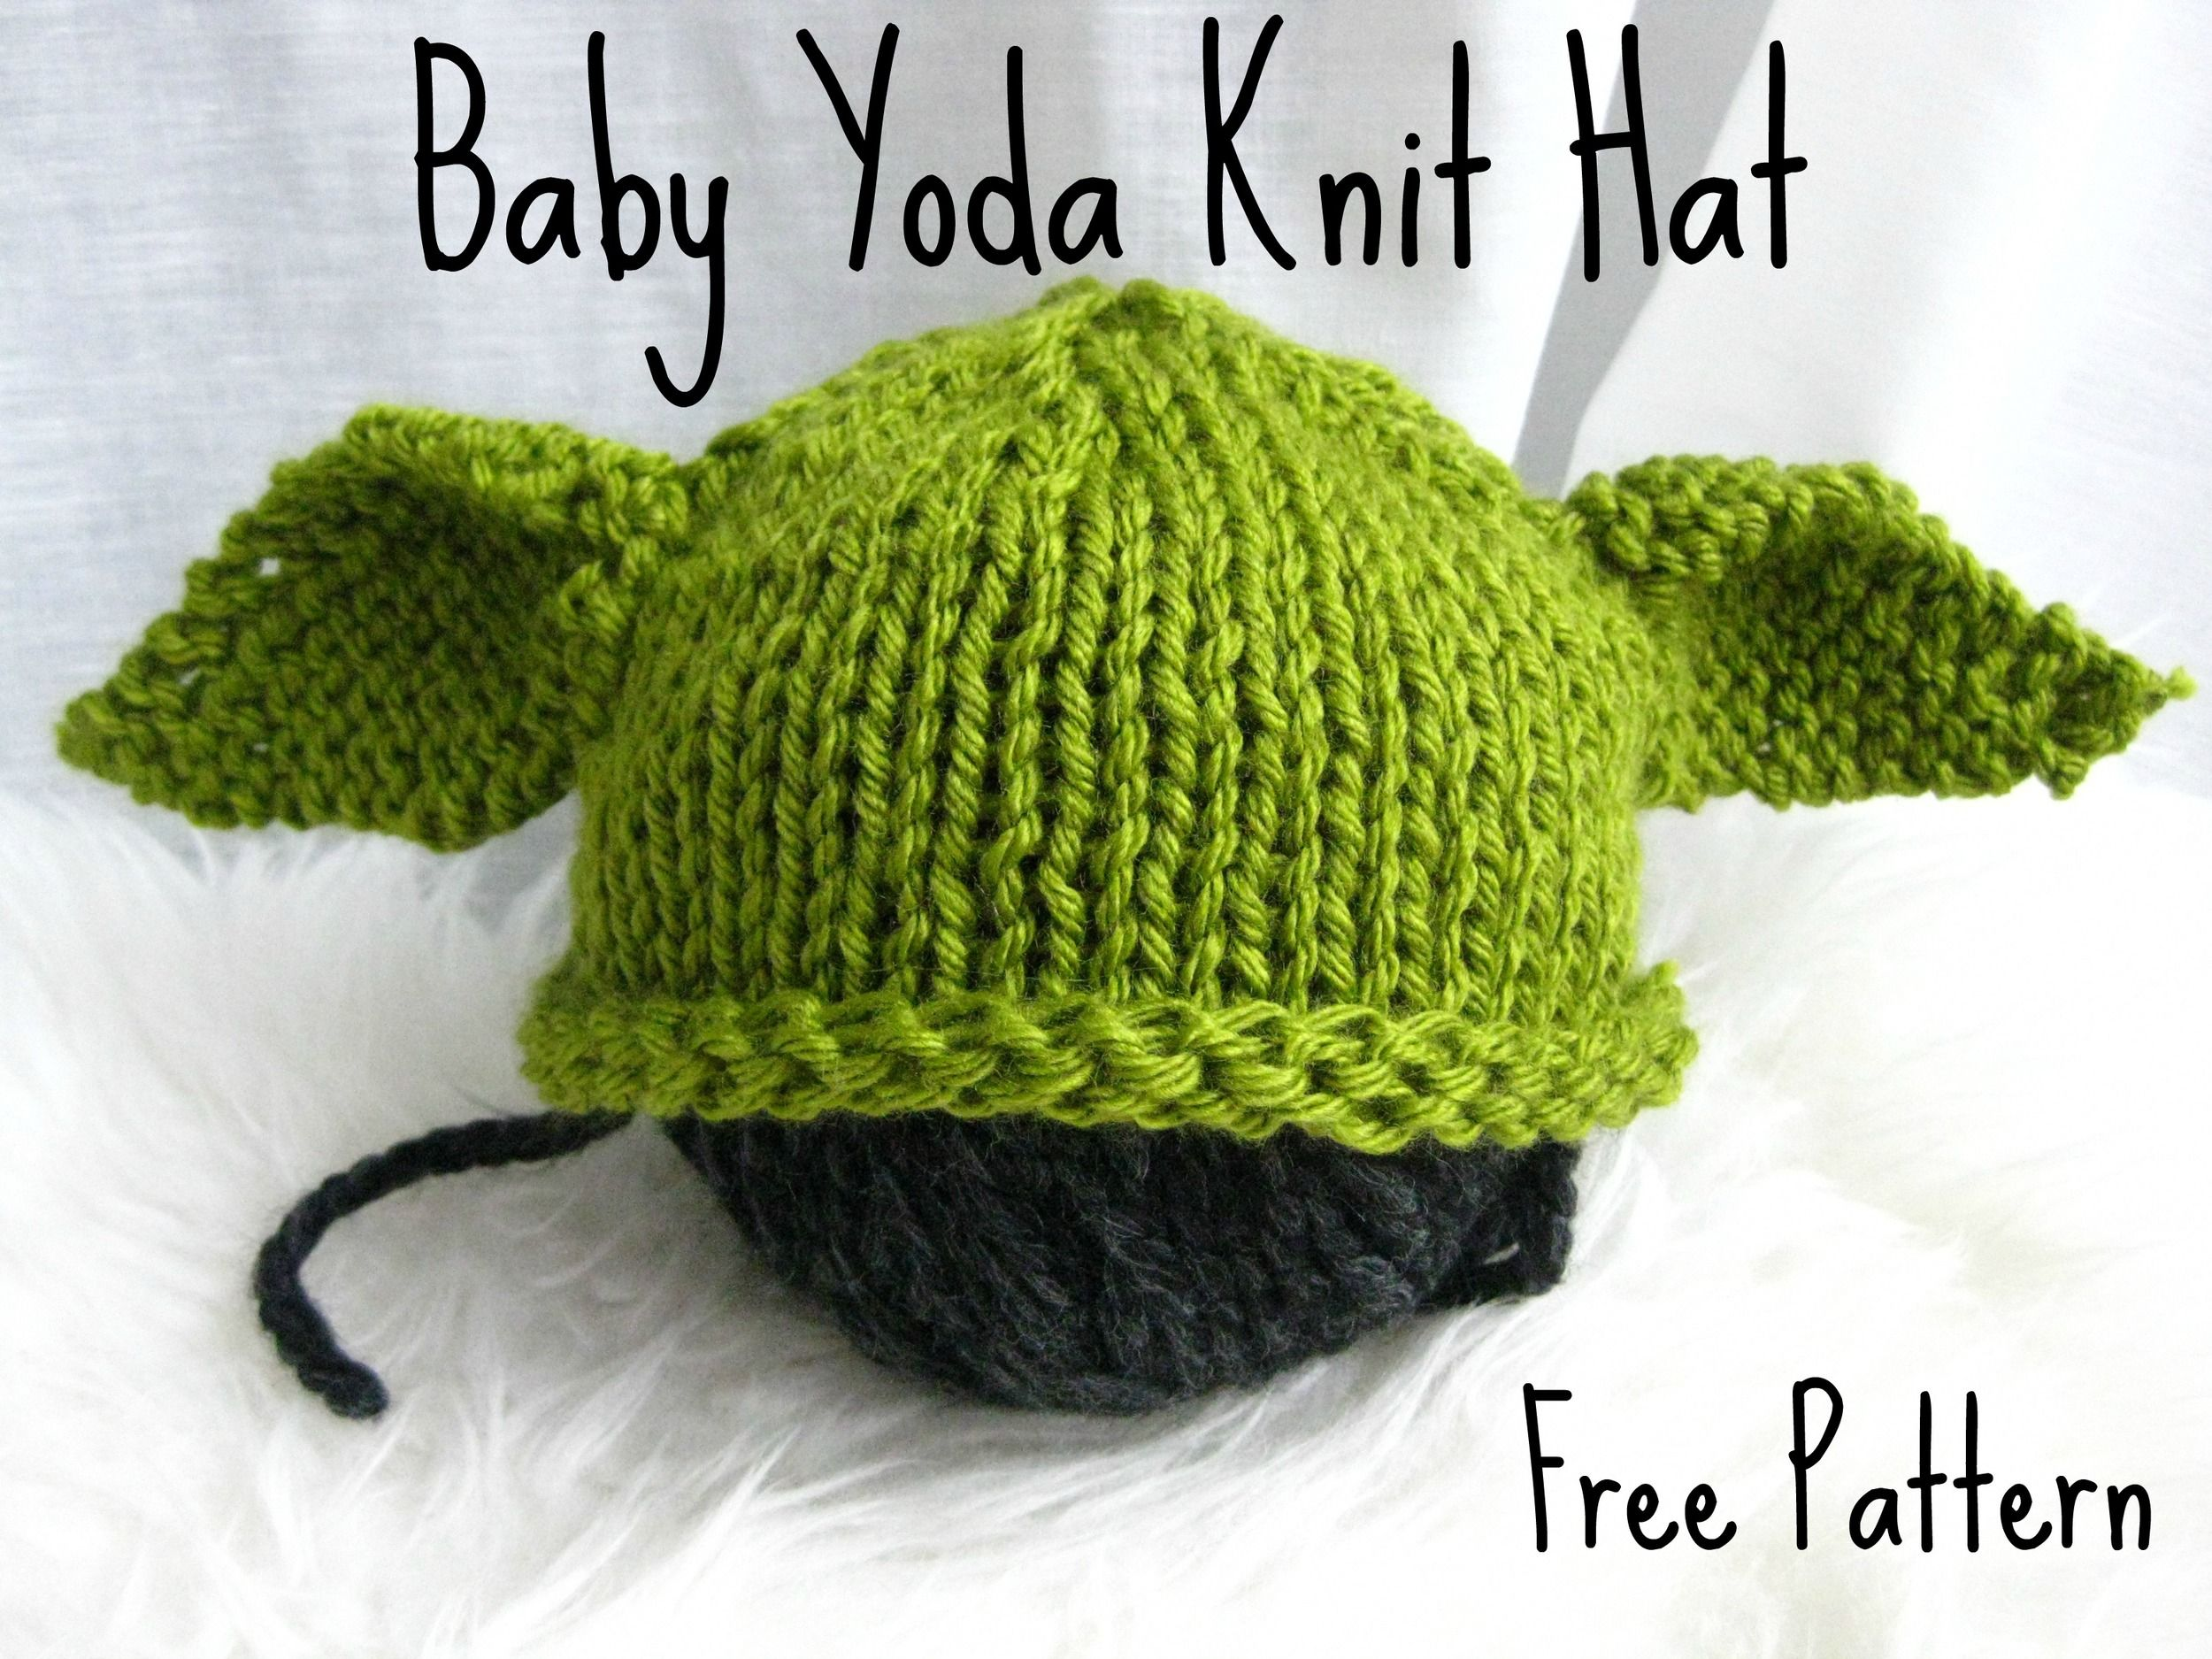 Baby Yoda Knit Hat (with Free Pattern)  dcc7184a8704